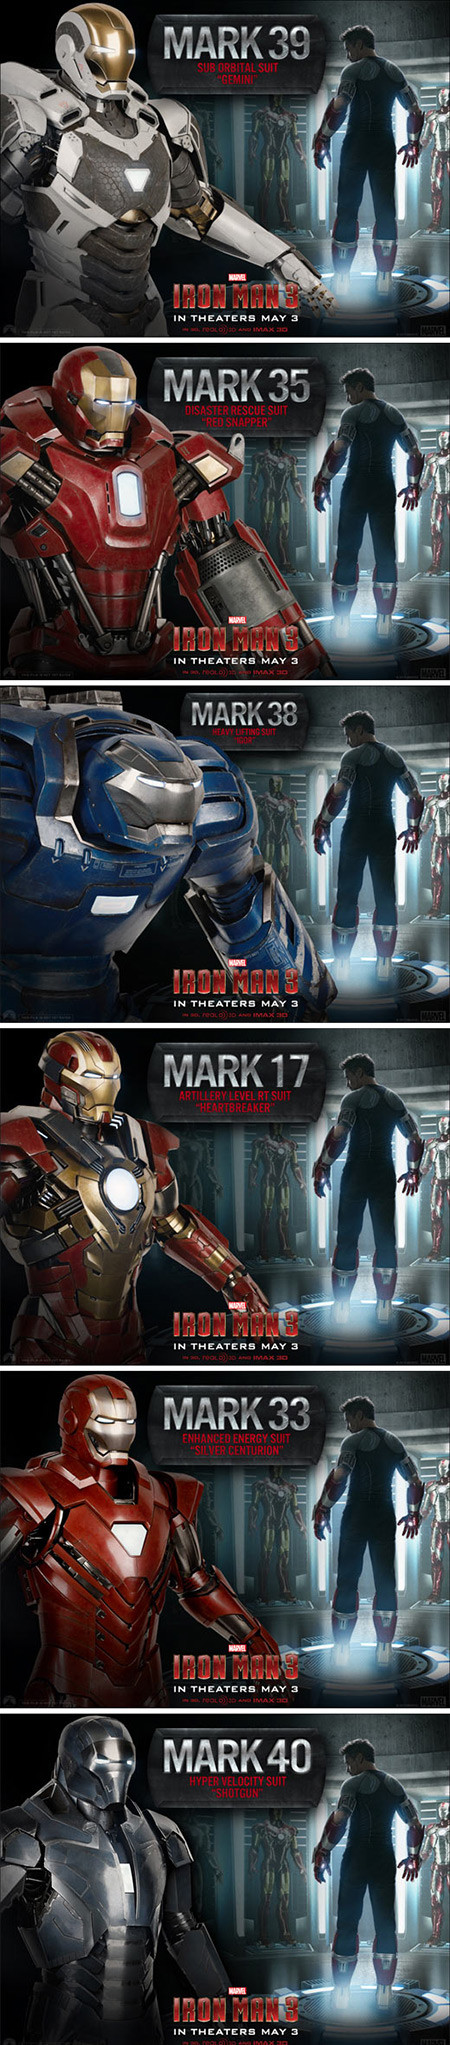 We Ve Rounded Up All Of The New Cool Iron Man 3 Suits Into One Image Marvel Comics Superheroes Marvel Heroes Marvel